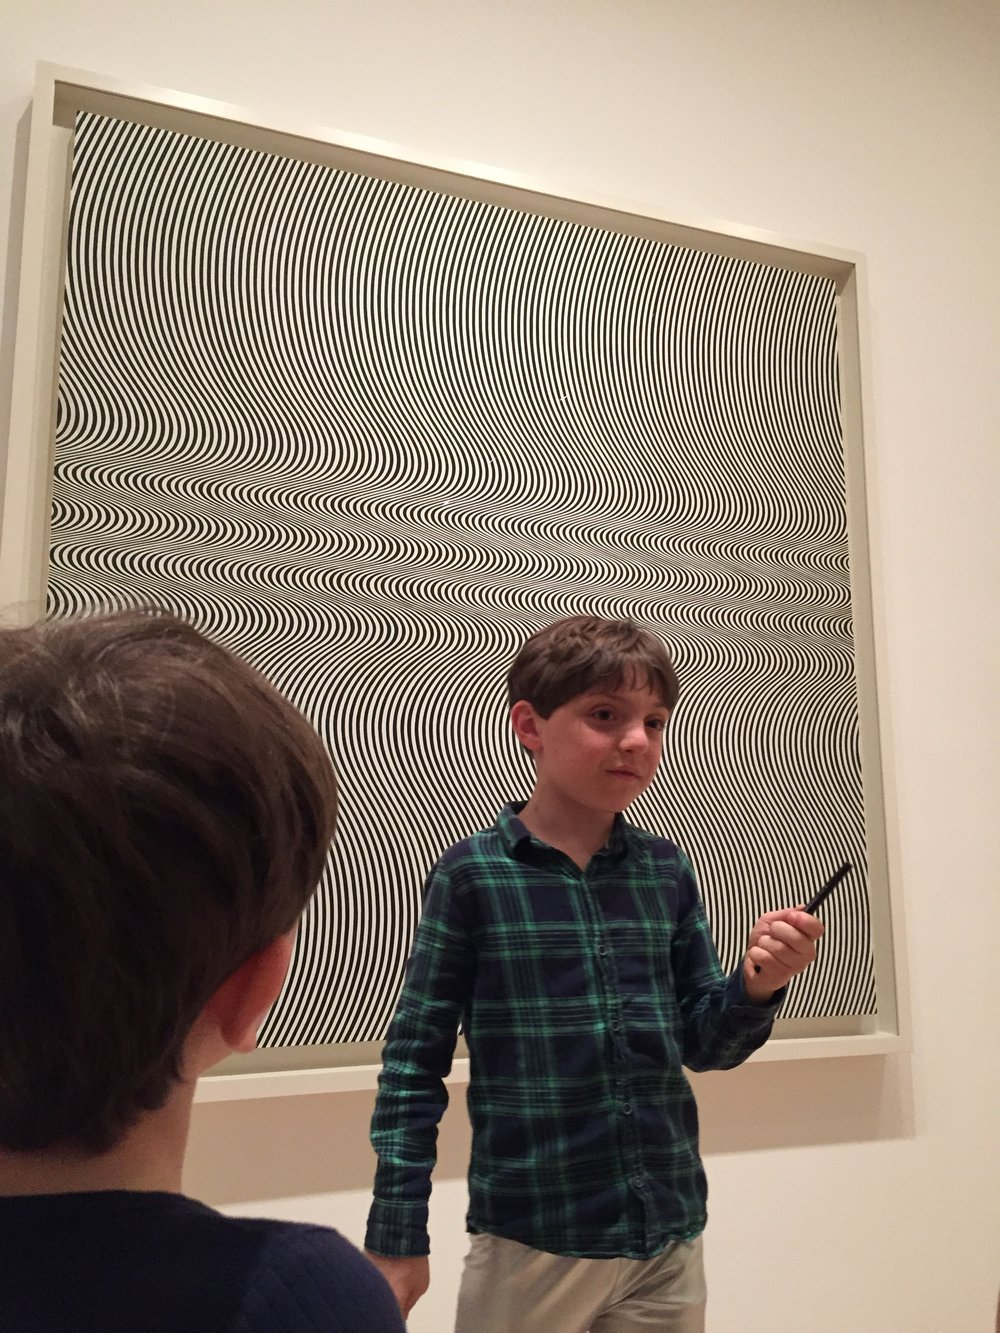 Zephyr got into Bridget Riley's op art, saying it both surprised him and made him feel calm